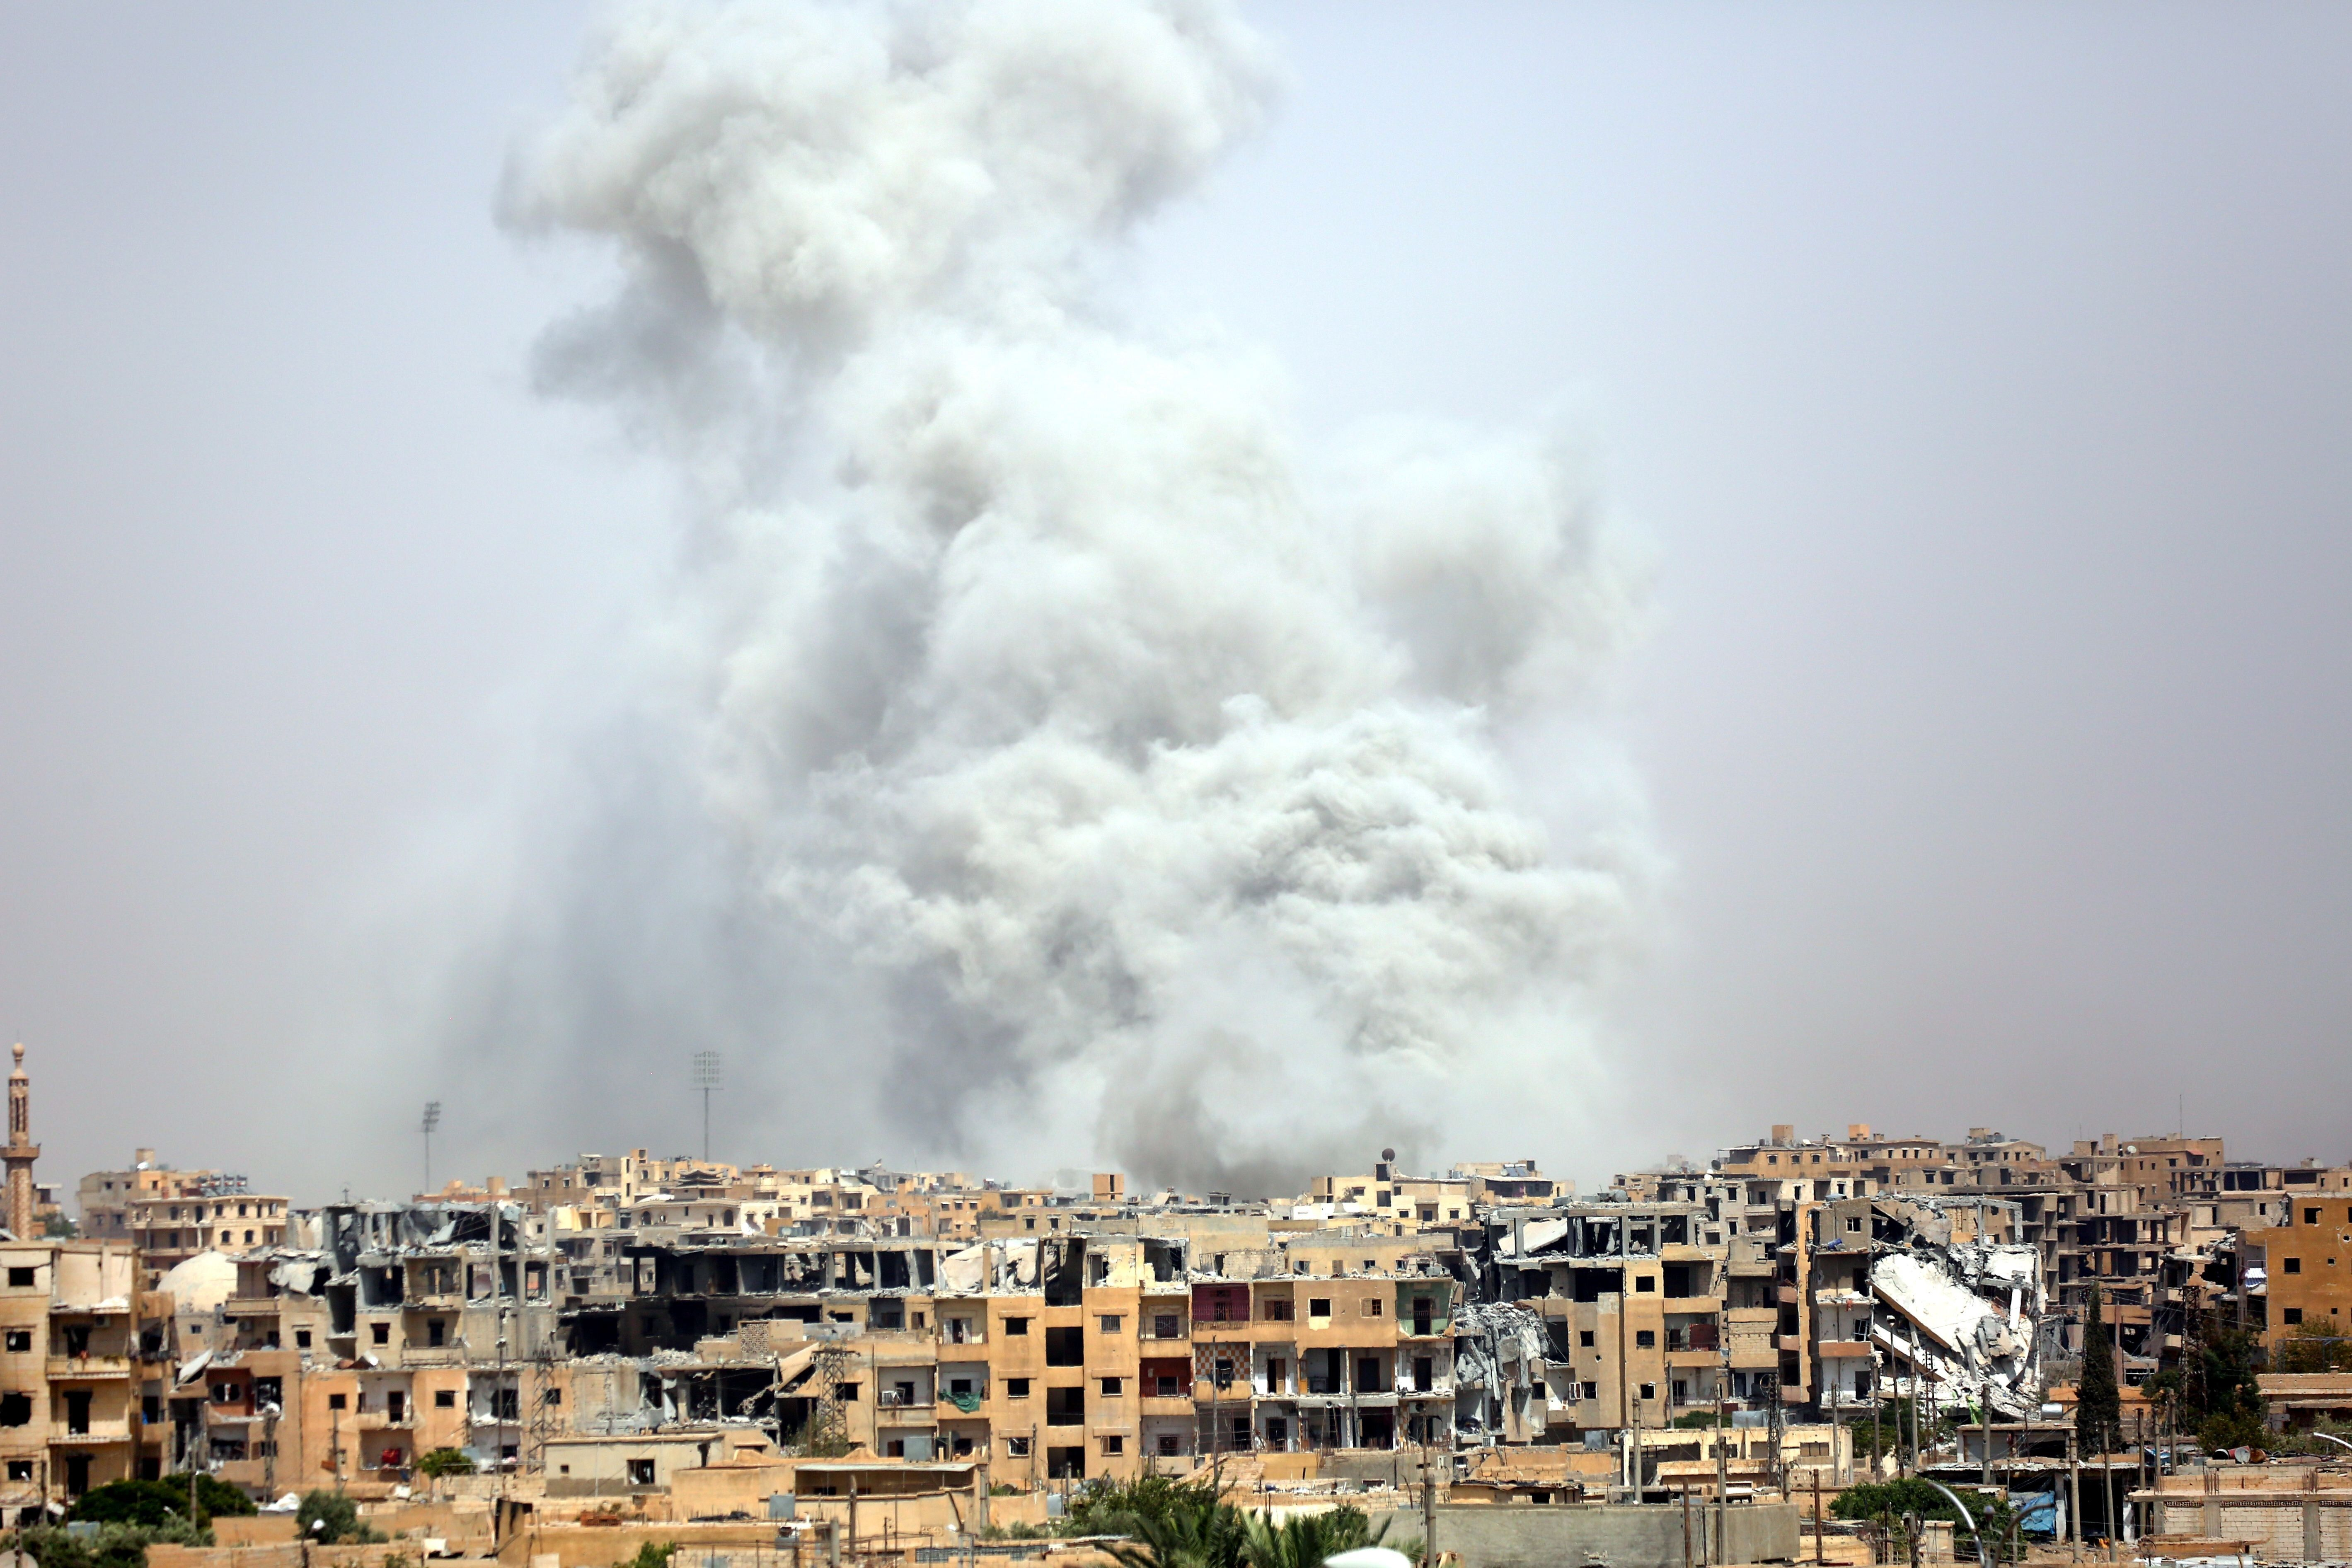 "TOPSHOT - Smoke billows out from Raqa following a coalition air strike on July 28, 2017. The Syrian Democratic Forces, a US-backed Kurdish-Arab alliance, has ousted Islamic State (IS) group jihadists from half of their Syrian bastion Raqa, where the SDF have been fighting for several months to capture the northern city which has become infamous as the Syrian heart of IS's so-called ""caliphate."" / AFP PHOTO / DELIL SOULEIMAN        (Photo credit should read DELIL SOULEIMAN/AFP/Getty Images)"